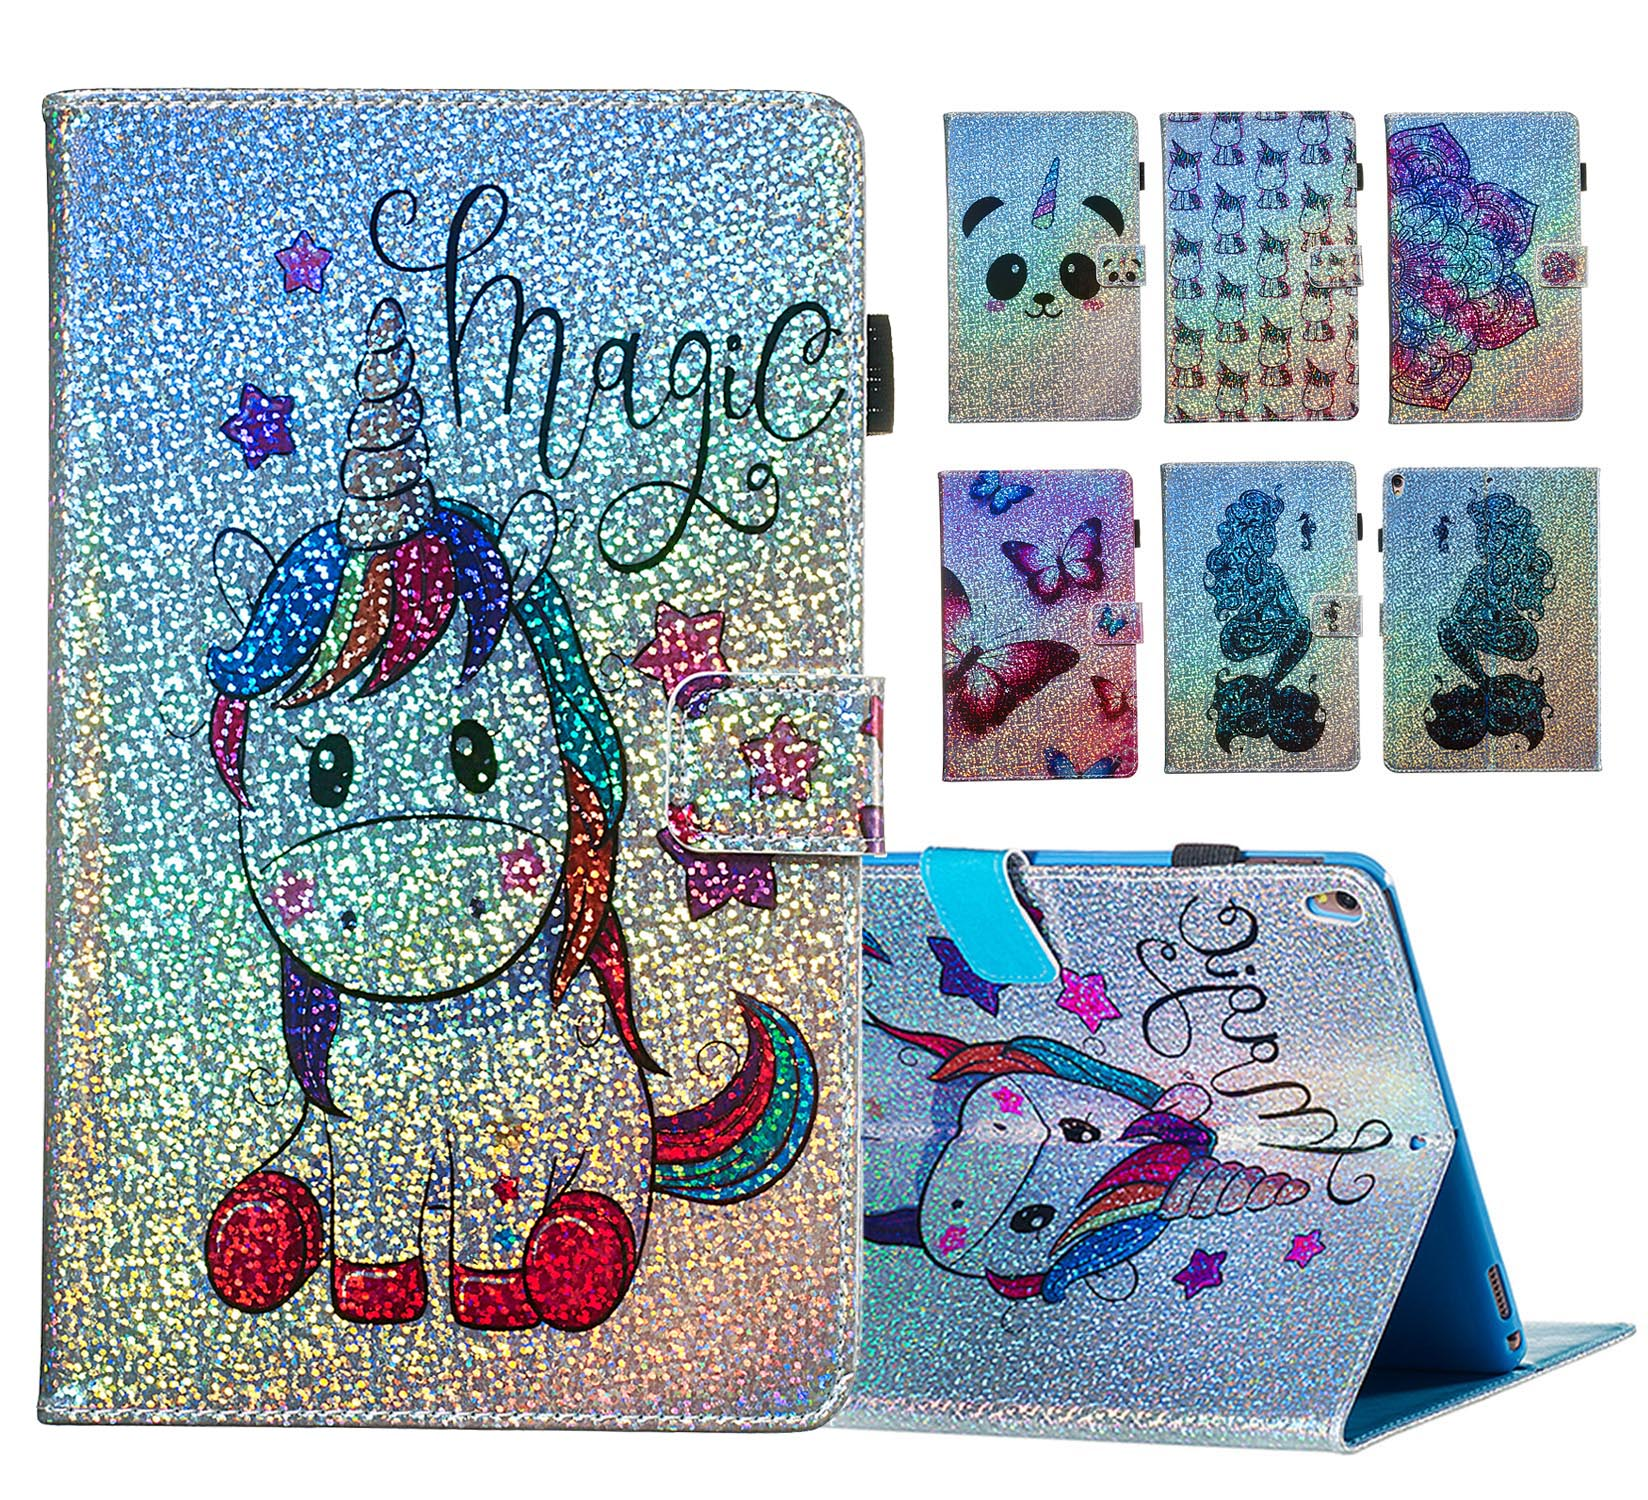 Fundas Tablets Unicorn Case For Amazon New Kindle 658 10th Generation 2019 Fashion Leather Flip Wallet Silicone Shell Coque